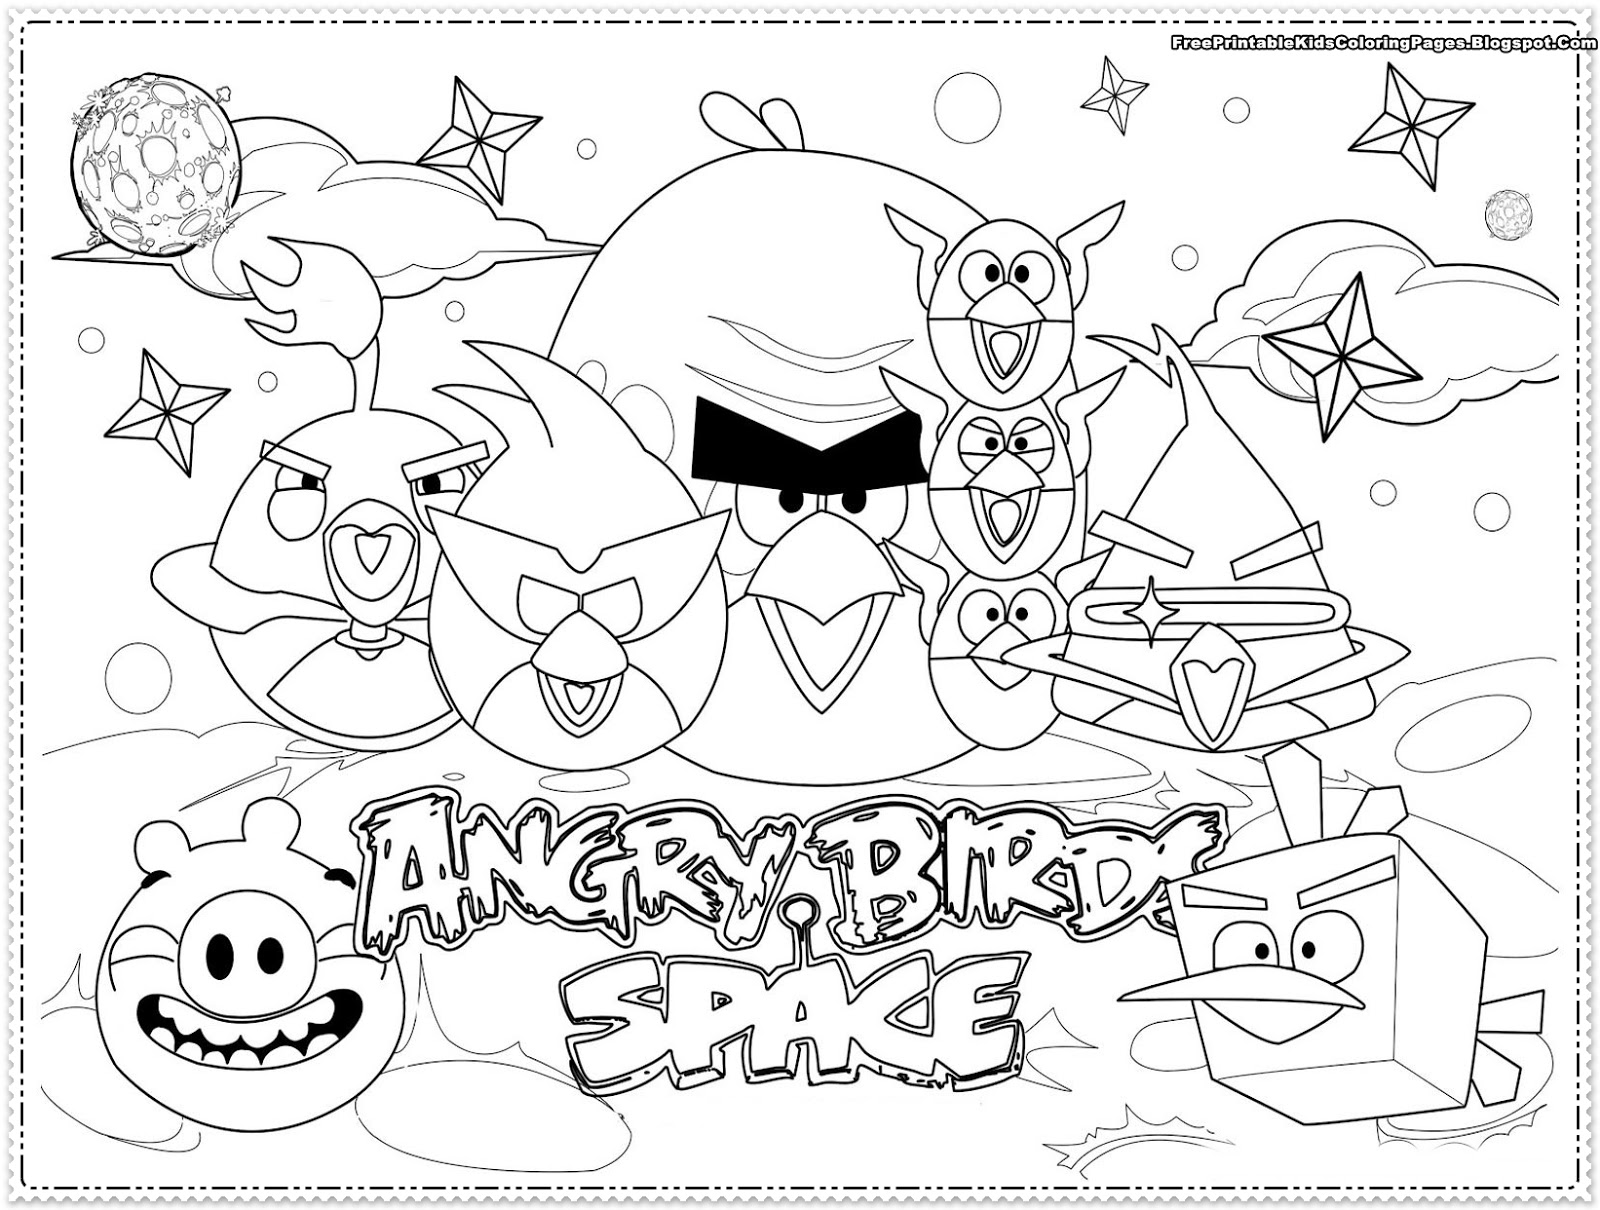 Free angry birds coloring pages for kids ~ Angry Birds kids Coloring Pages - Free Printable Kids ...